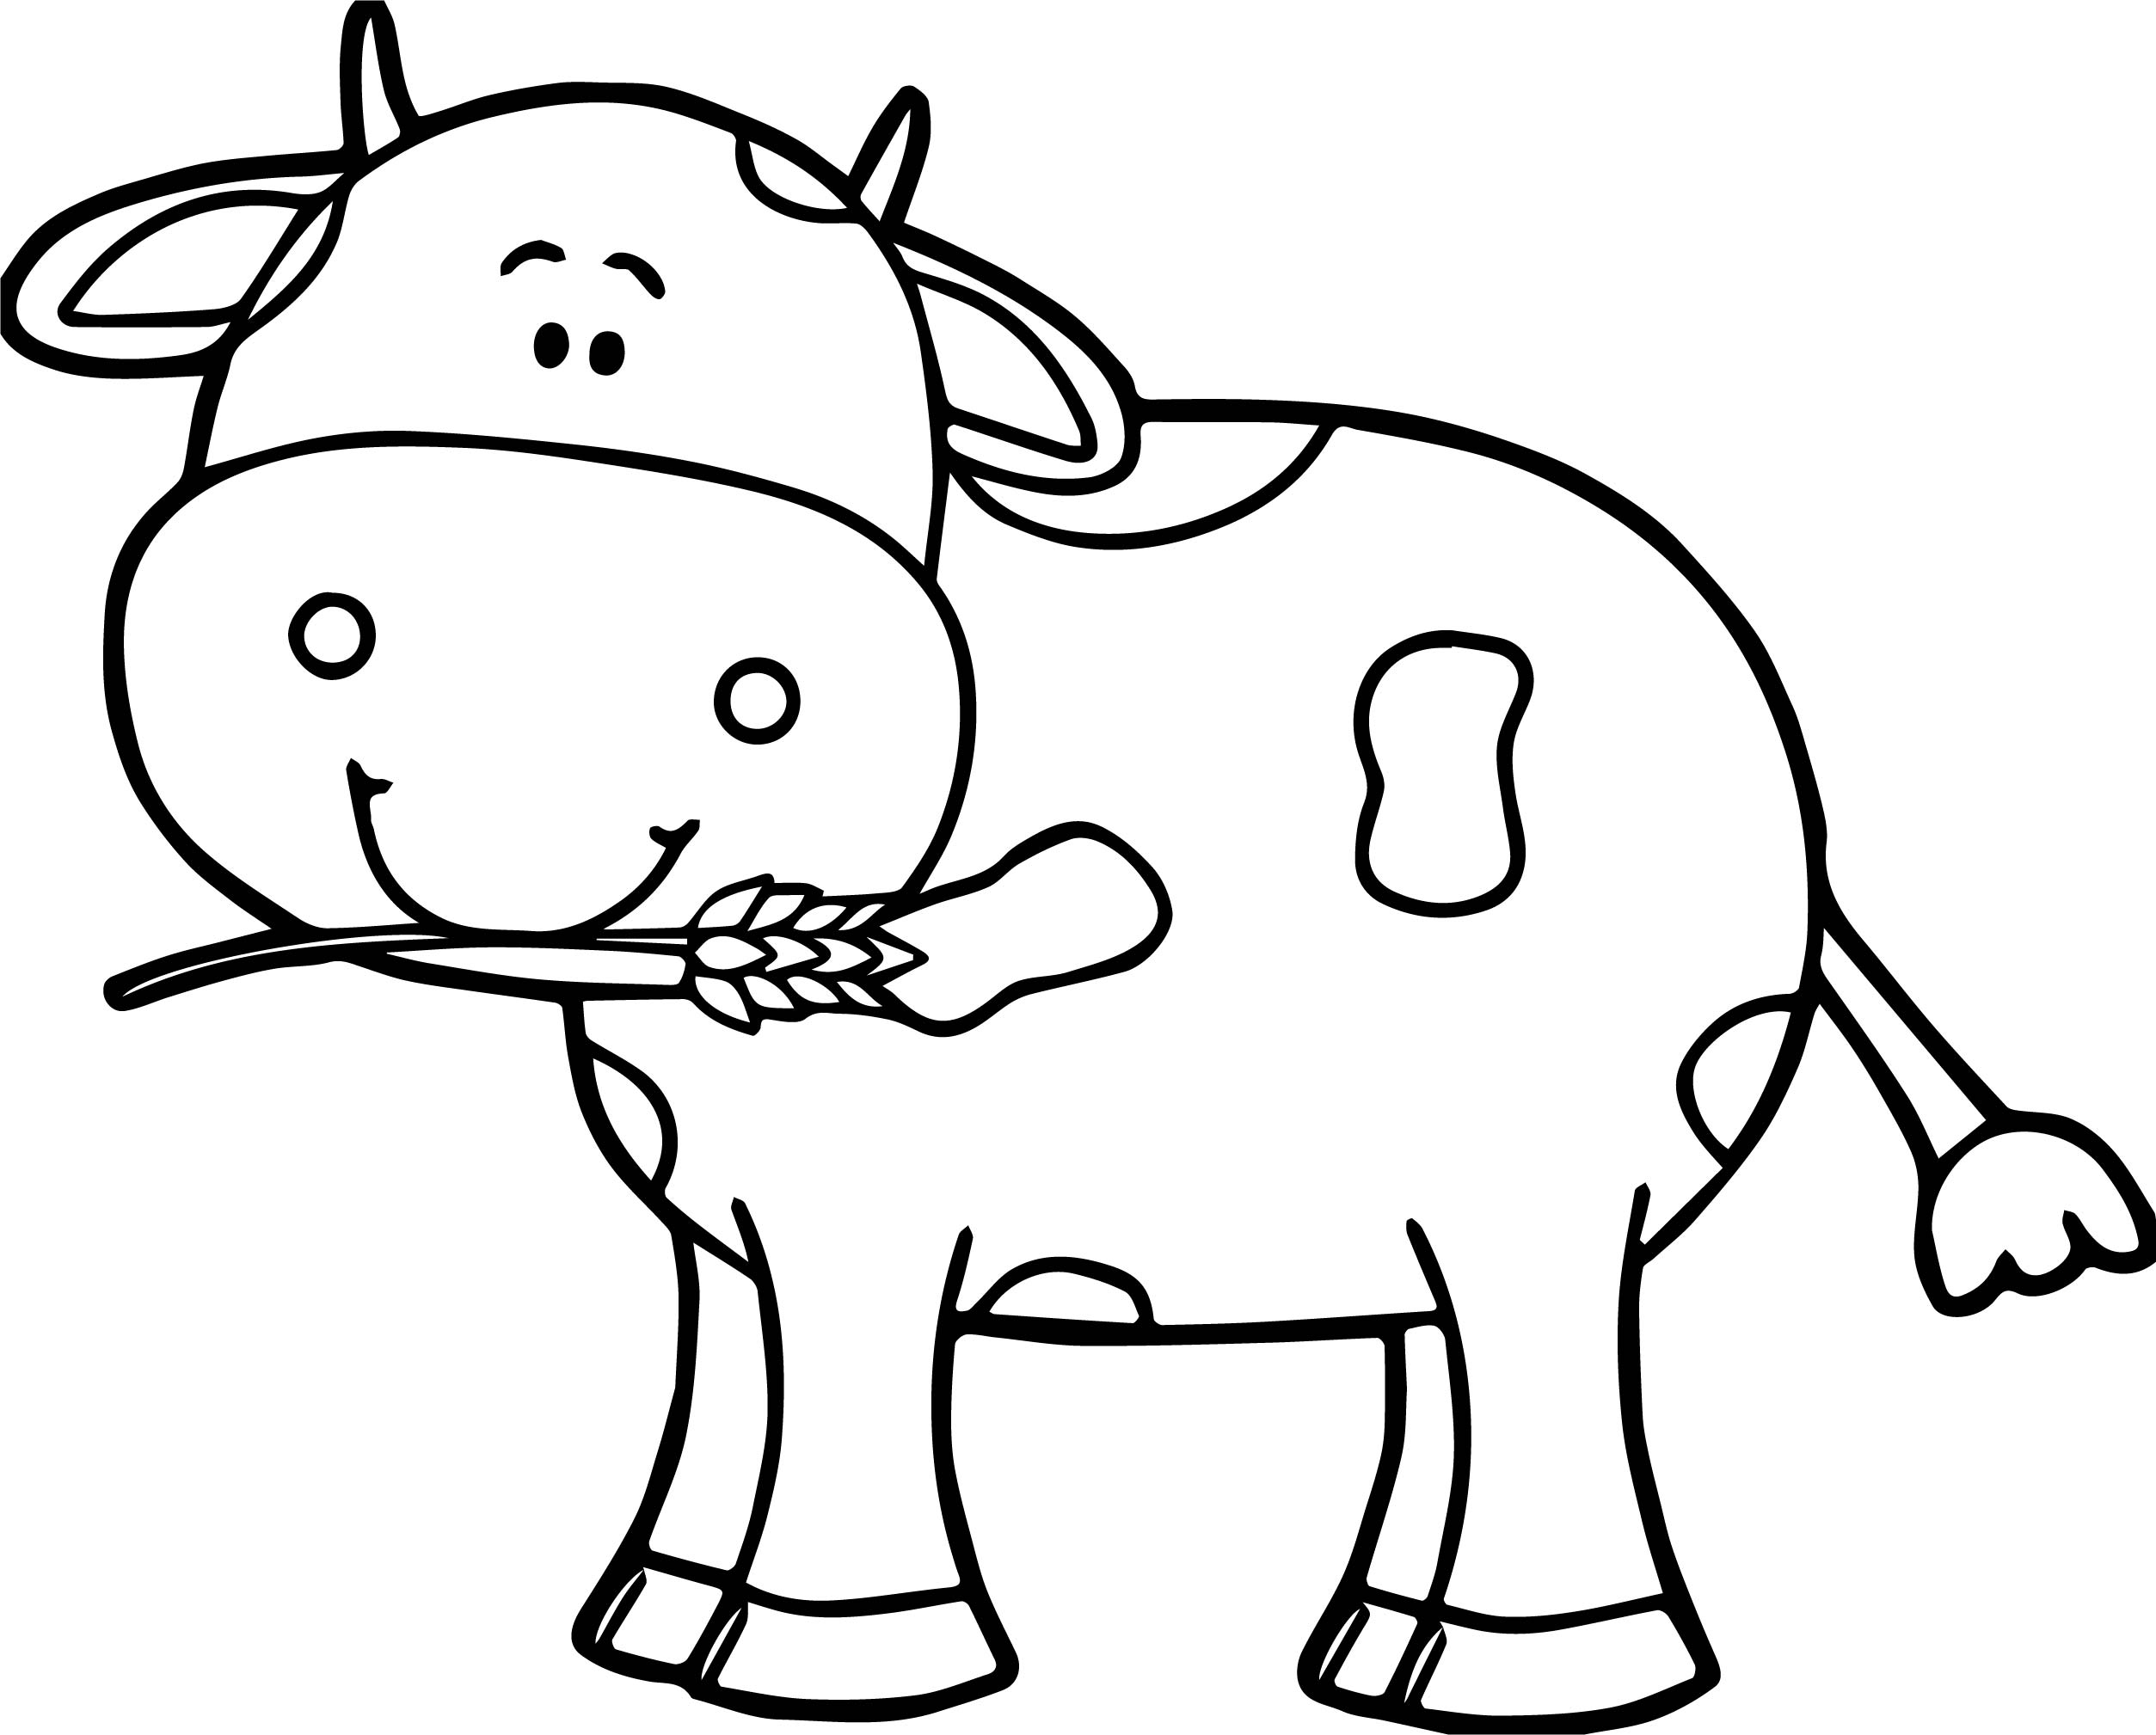 Simple Cow Drawing At Getdrawings